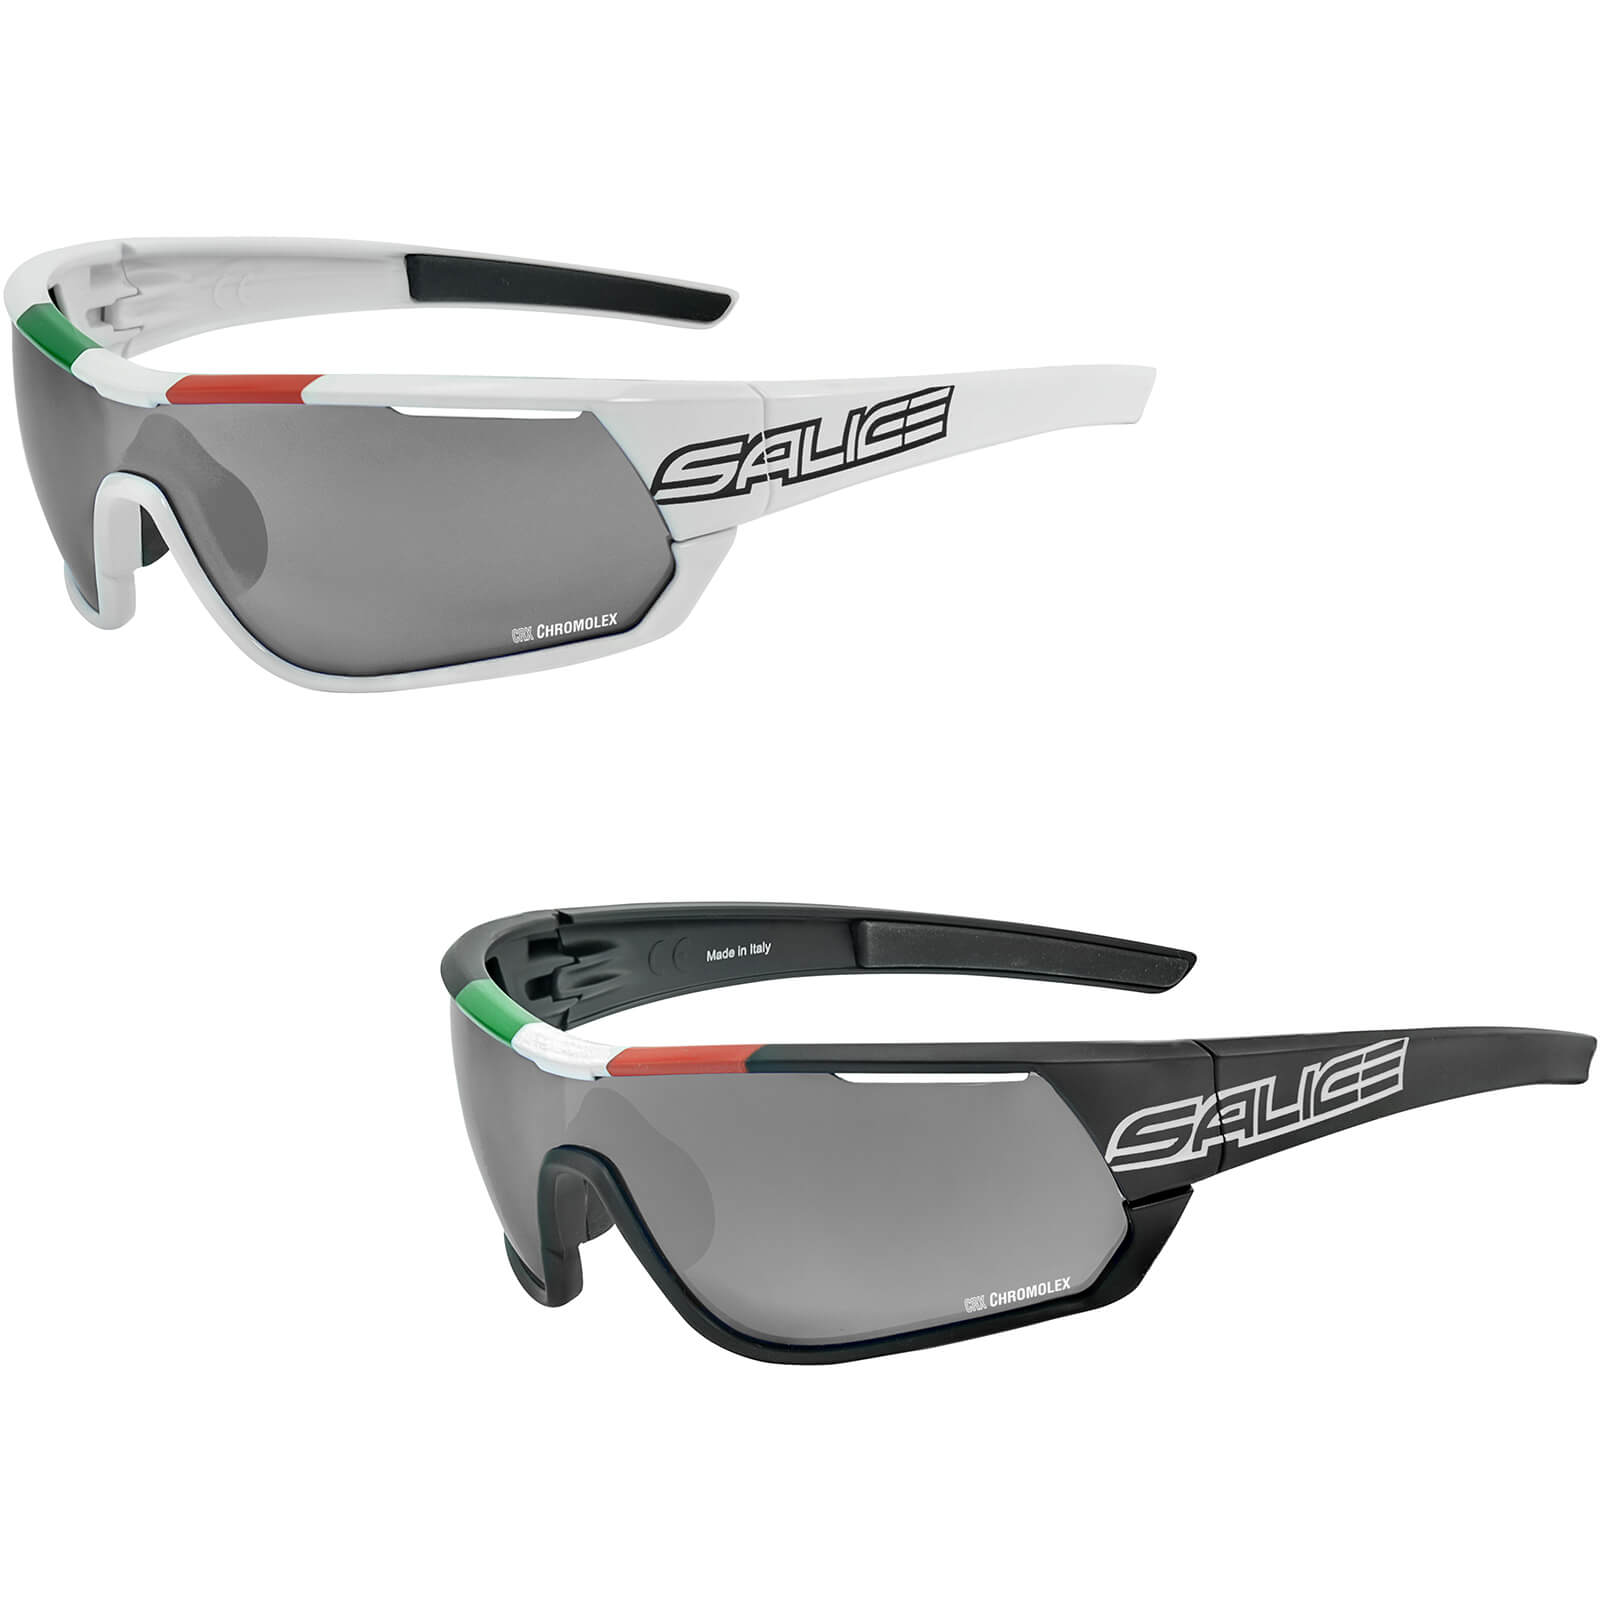 Salice 016 Italian Edition CRX Photochromic Sunglasses